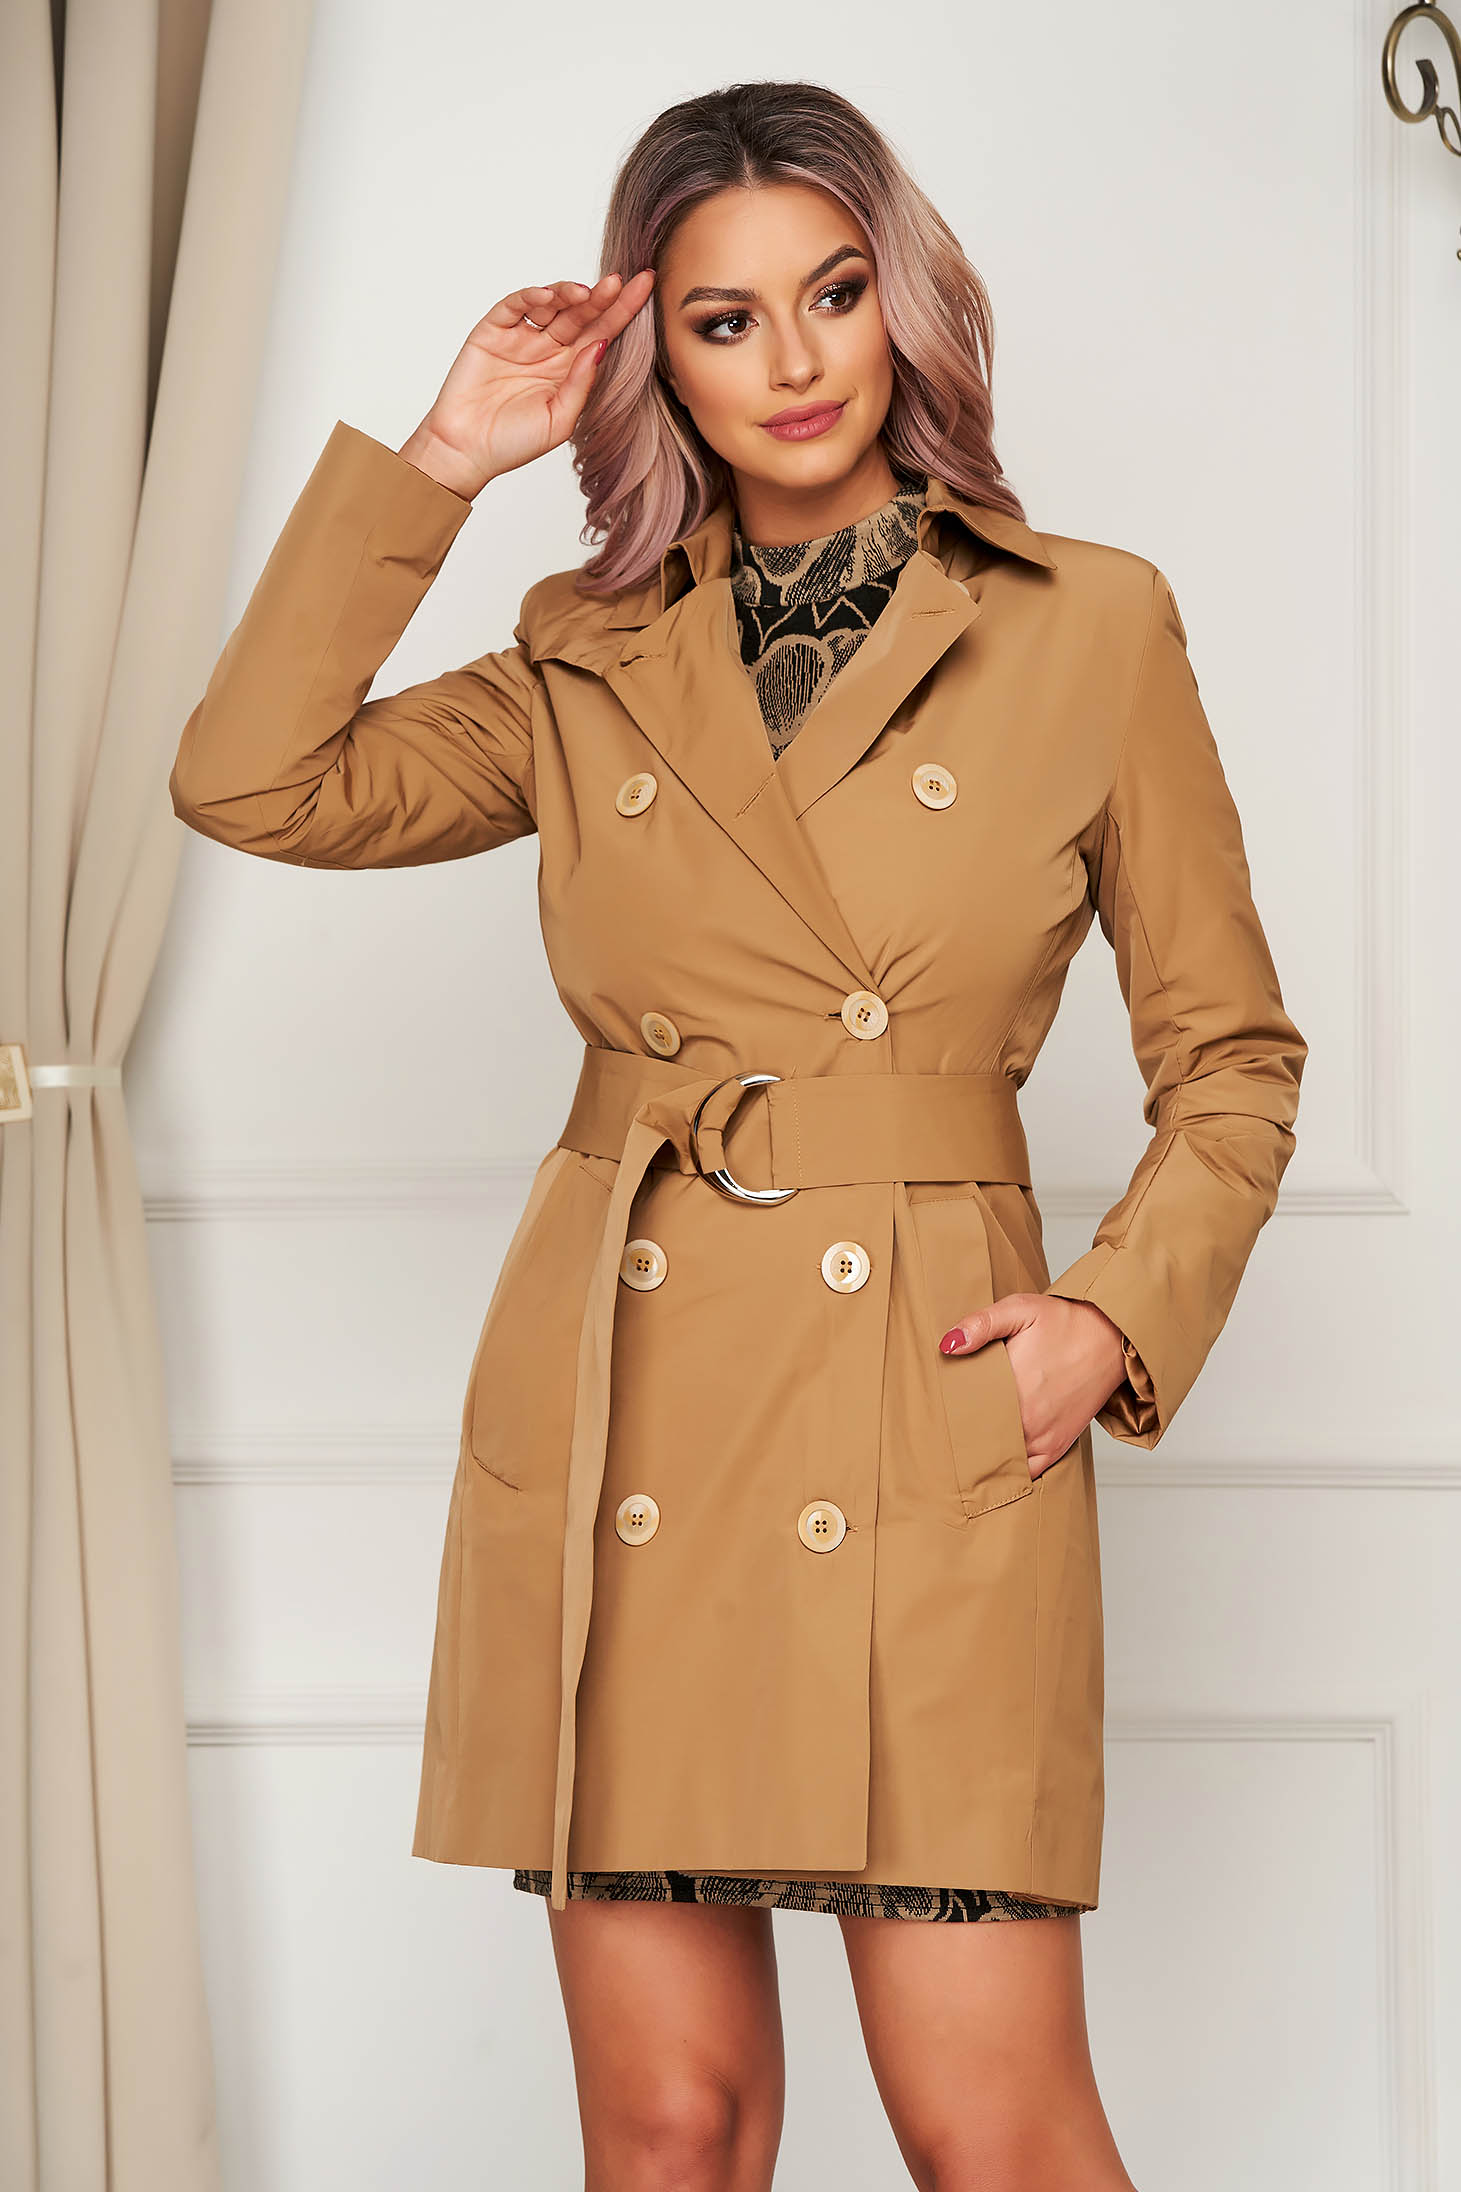 Casual cream trenchcoat arched cut accessorized with tied waistband